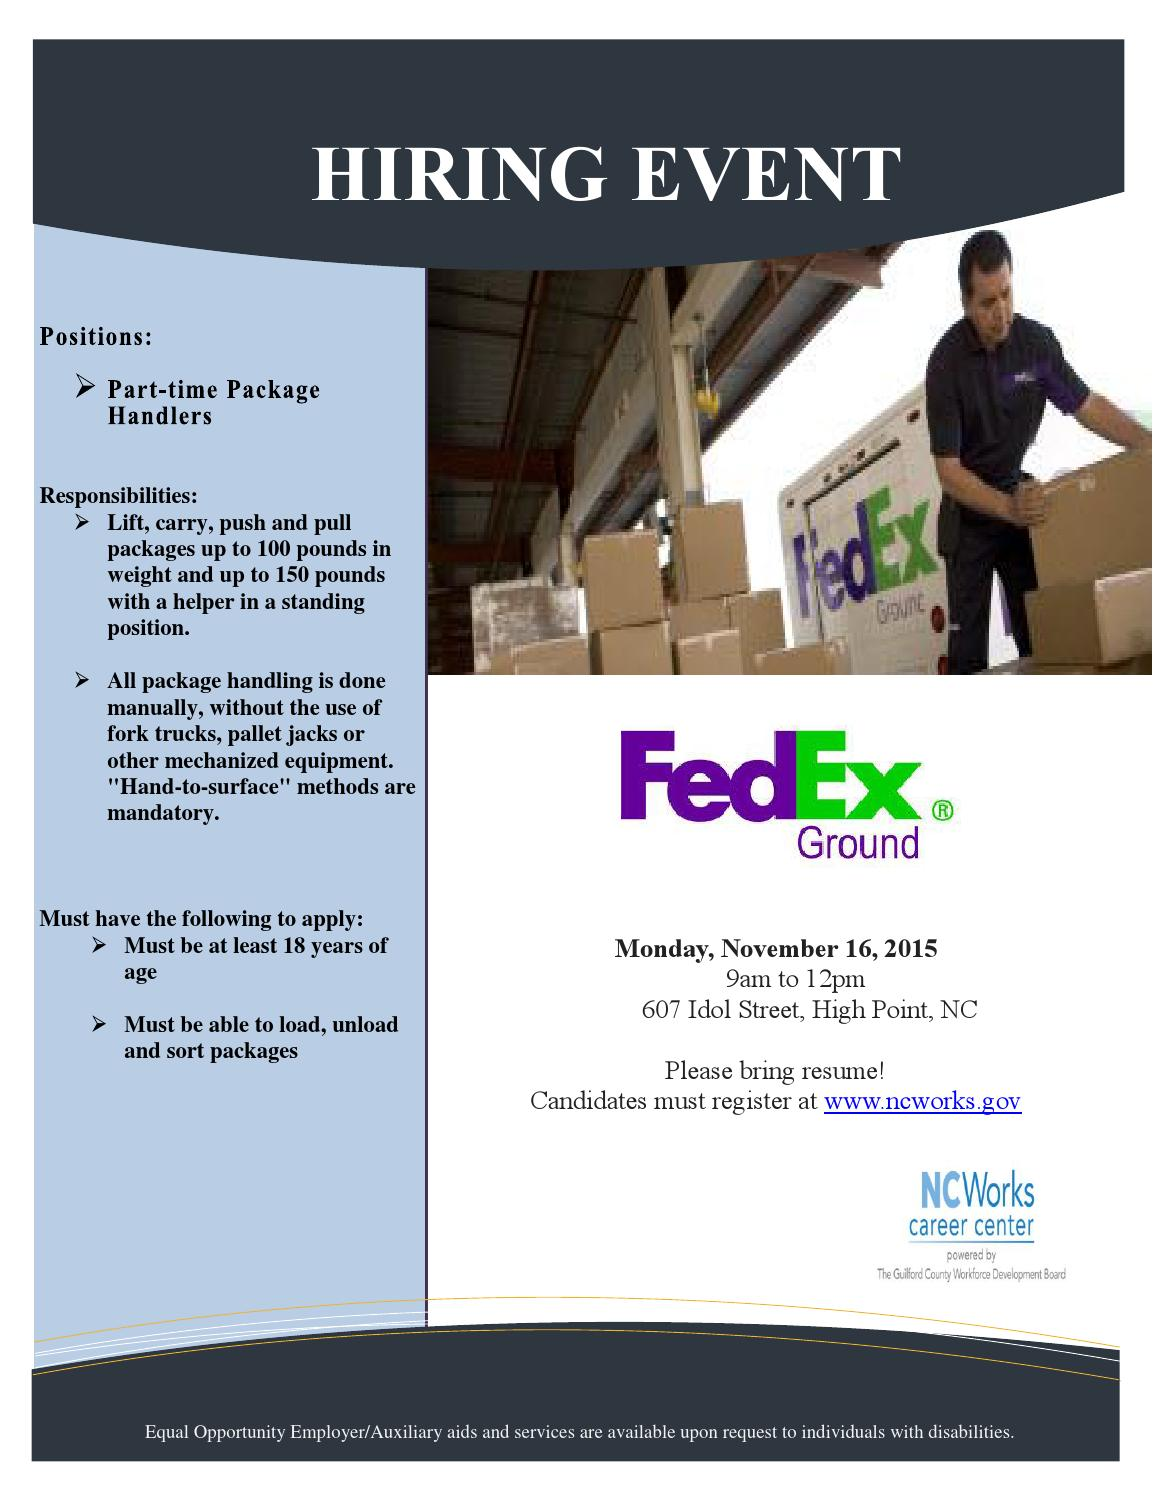 Loading And Unloading Trucks Resume Fedex Hiring Event By Ncworks Career Center Guilford